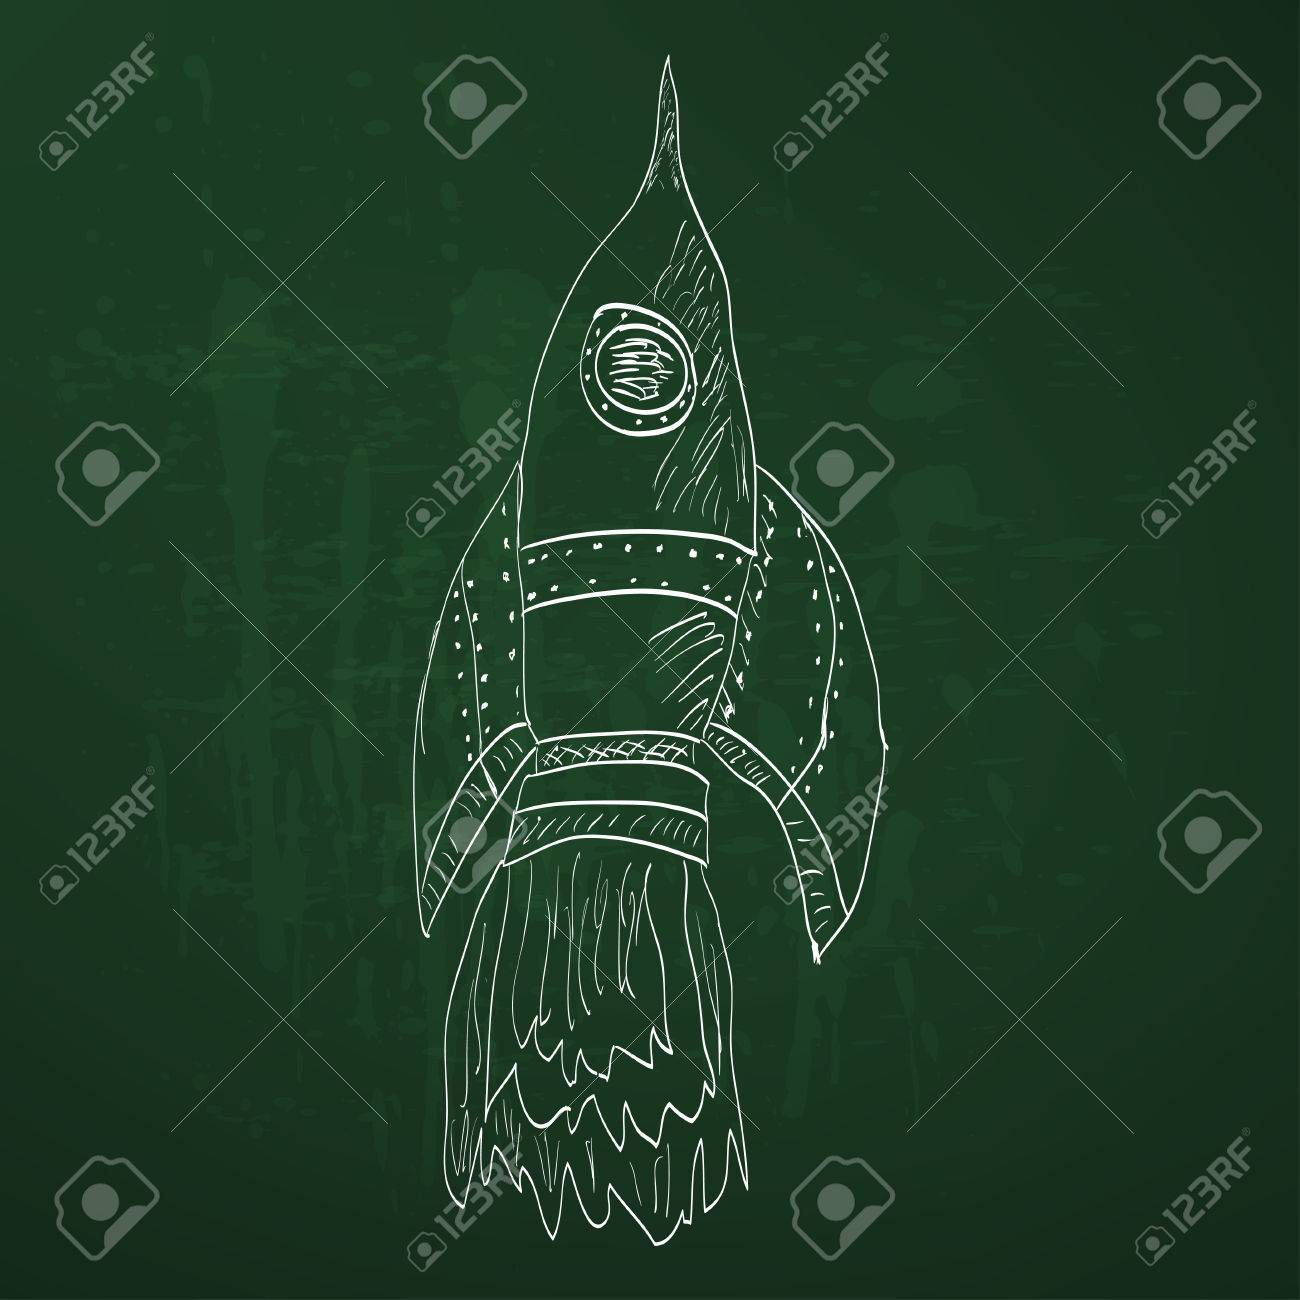 1300x1300 Soaring Rocket Ship Cartoon Icon. Sketch Royalty Free Cliparts